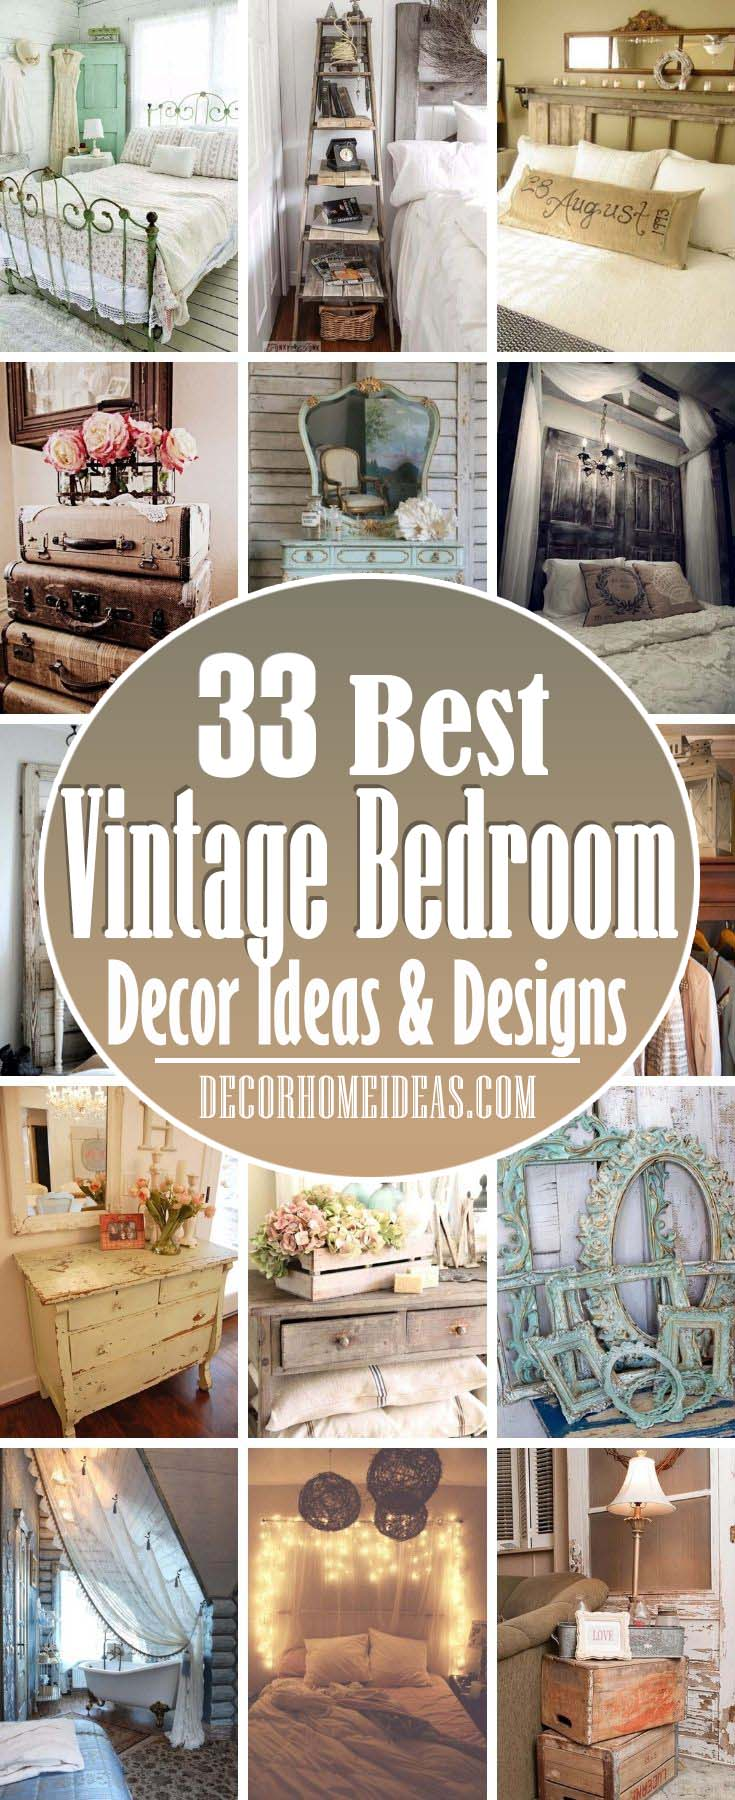 Best Vintage Bedroom Decor Ideas. This exquisite and delicate vintage style is very popular, and we've prepared some adorable bedroom design ideas for those who like it.  #decorhomeideas